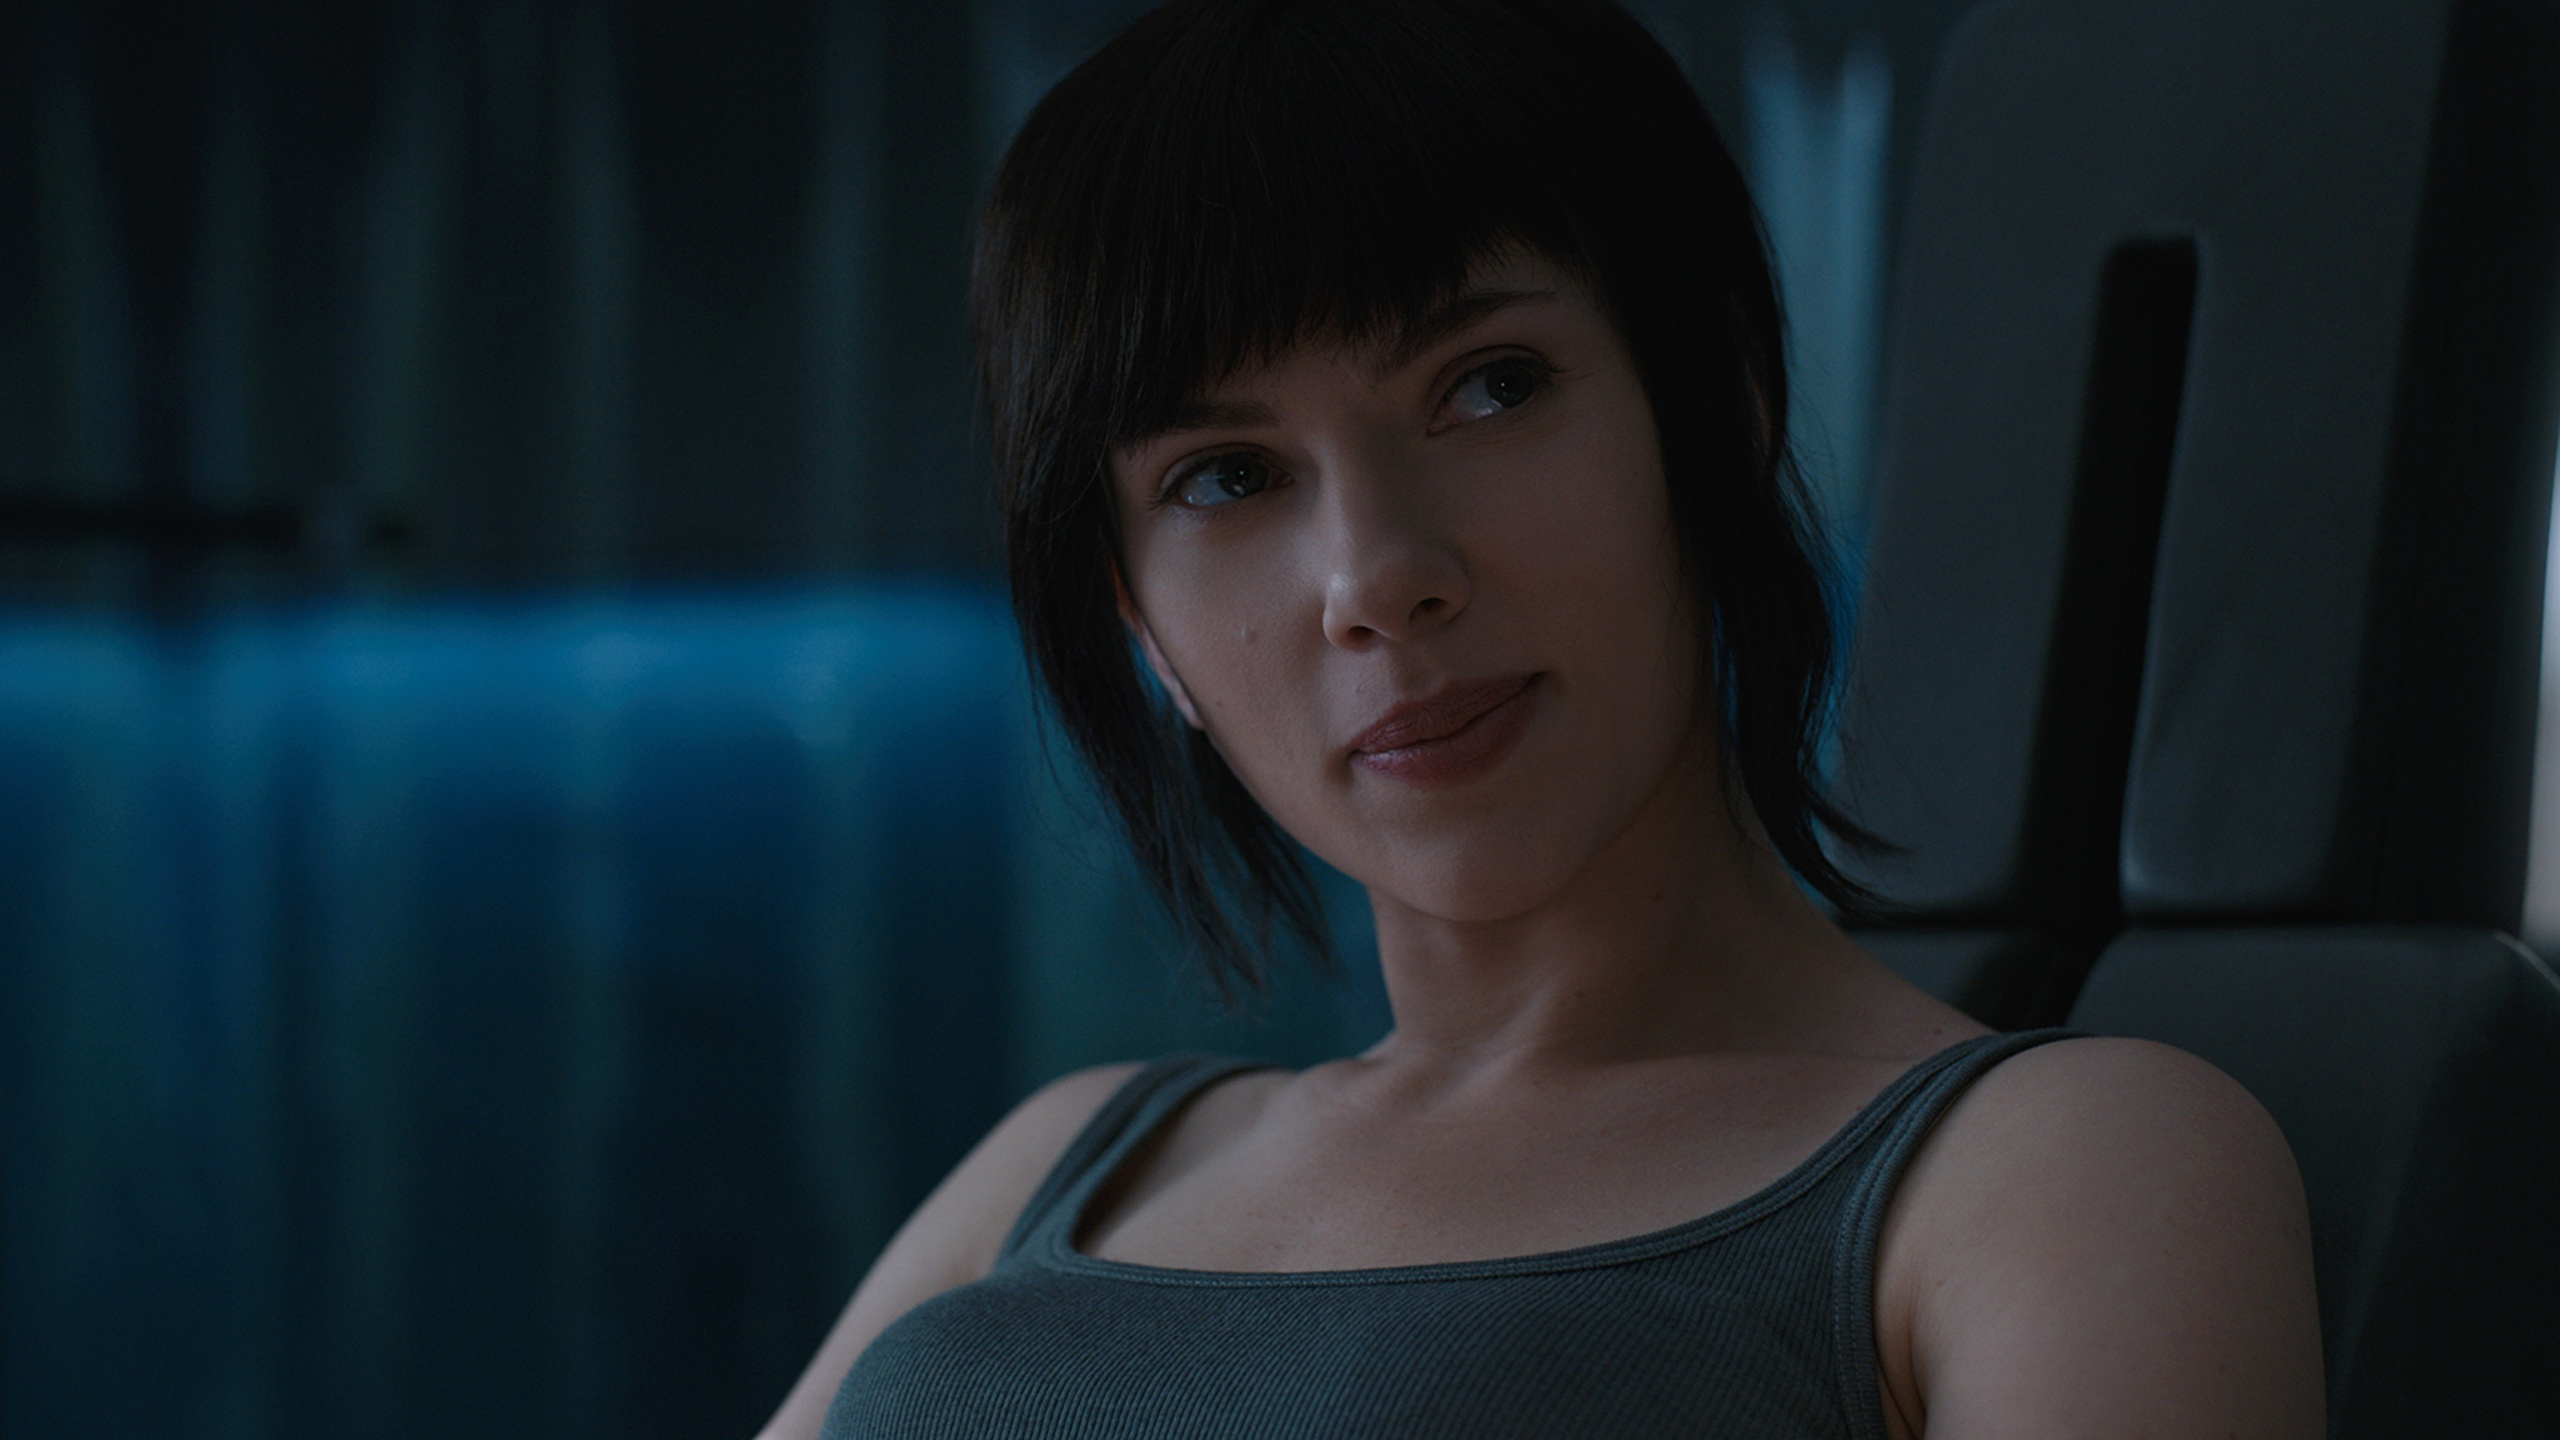 Image Scarlett Johansson Smile Ghost In The Shell Girls